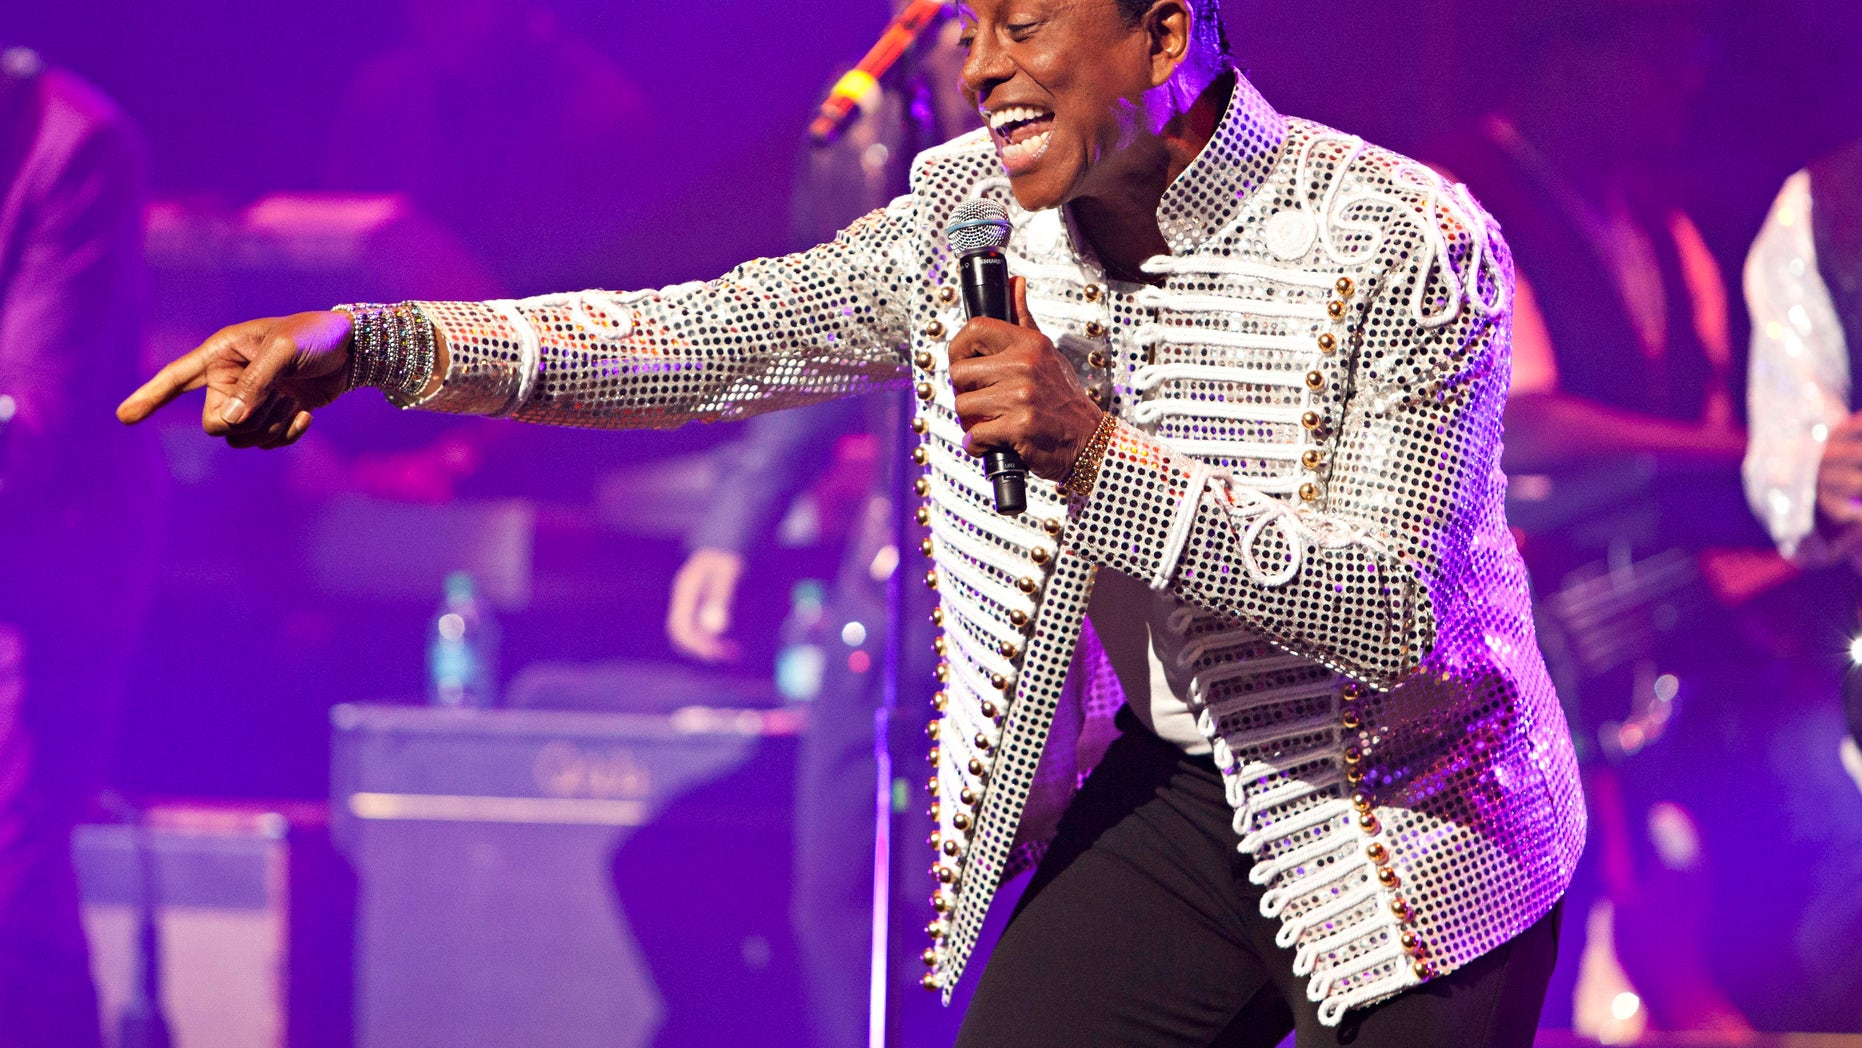 June 28, 2012: Jermaine Jackson of the musical group The Jacksons performs during the group's Unity Tour at the Apollo Theater in New York.